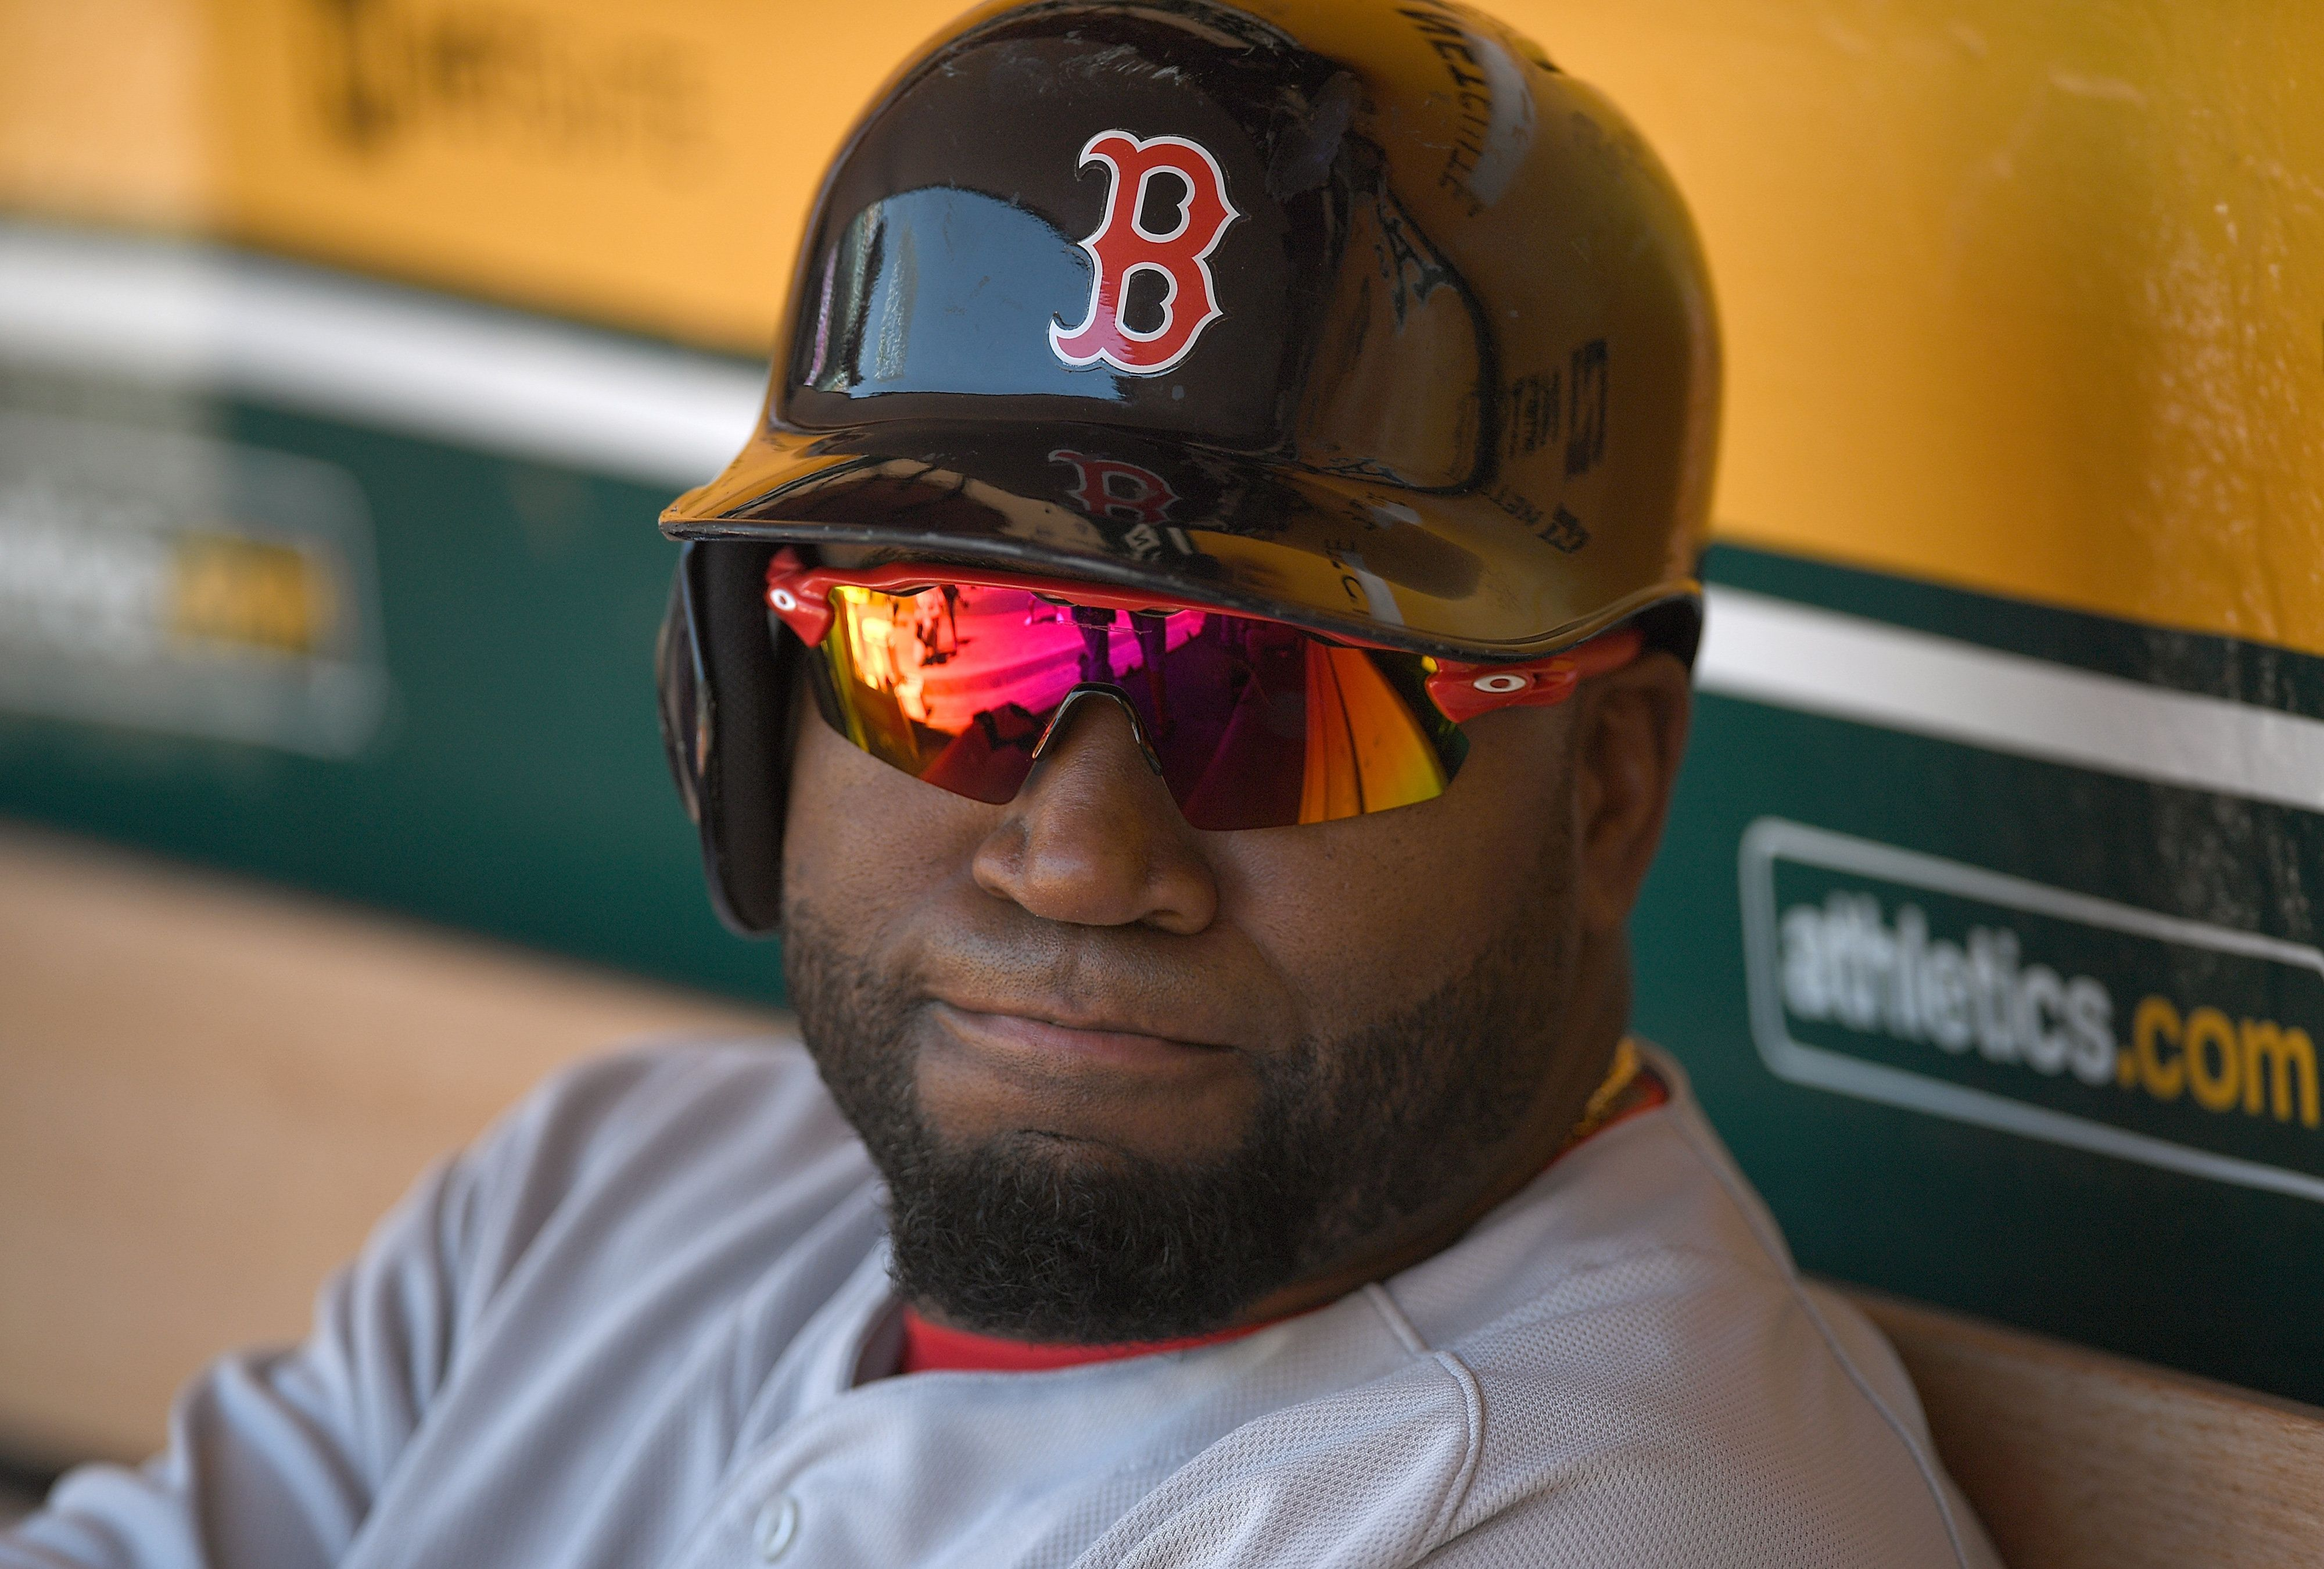 OAKLAND, CA - SEPTEMBER 04:  David Ortiz #34 of the Boston Red Sox looks on from the dugout prior to the start of the game against the Oakland Athletics at Oakland-Alameda County Coliseum on September 4, 2016 in Oakland, California.  (Photo by Thearon W. Henderson/Getty Images)